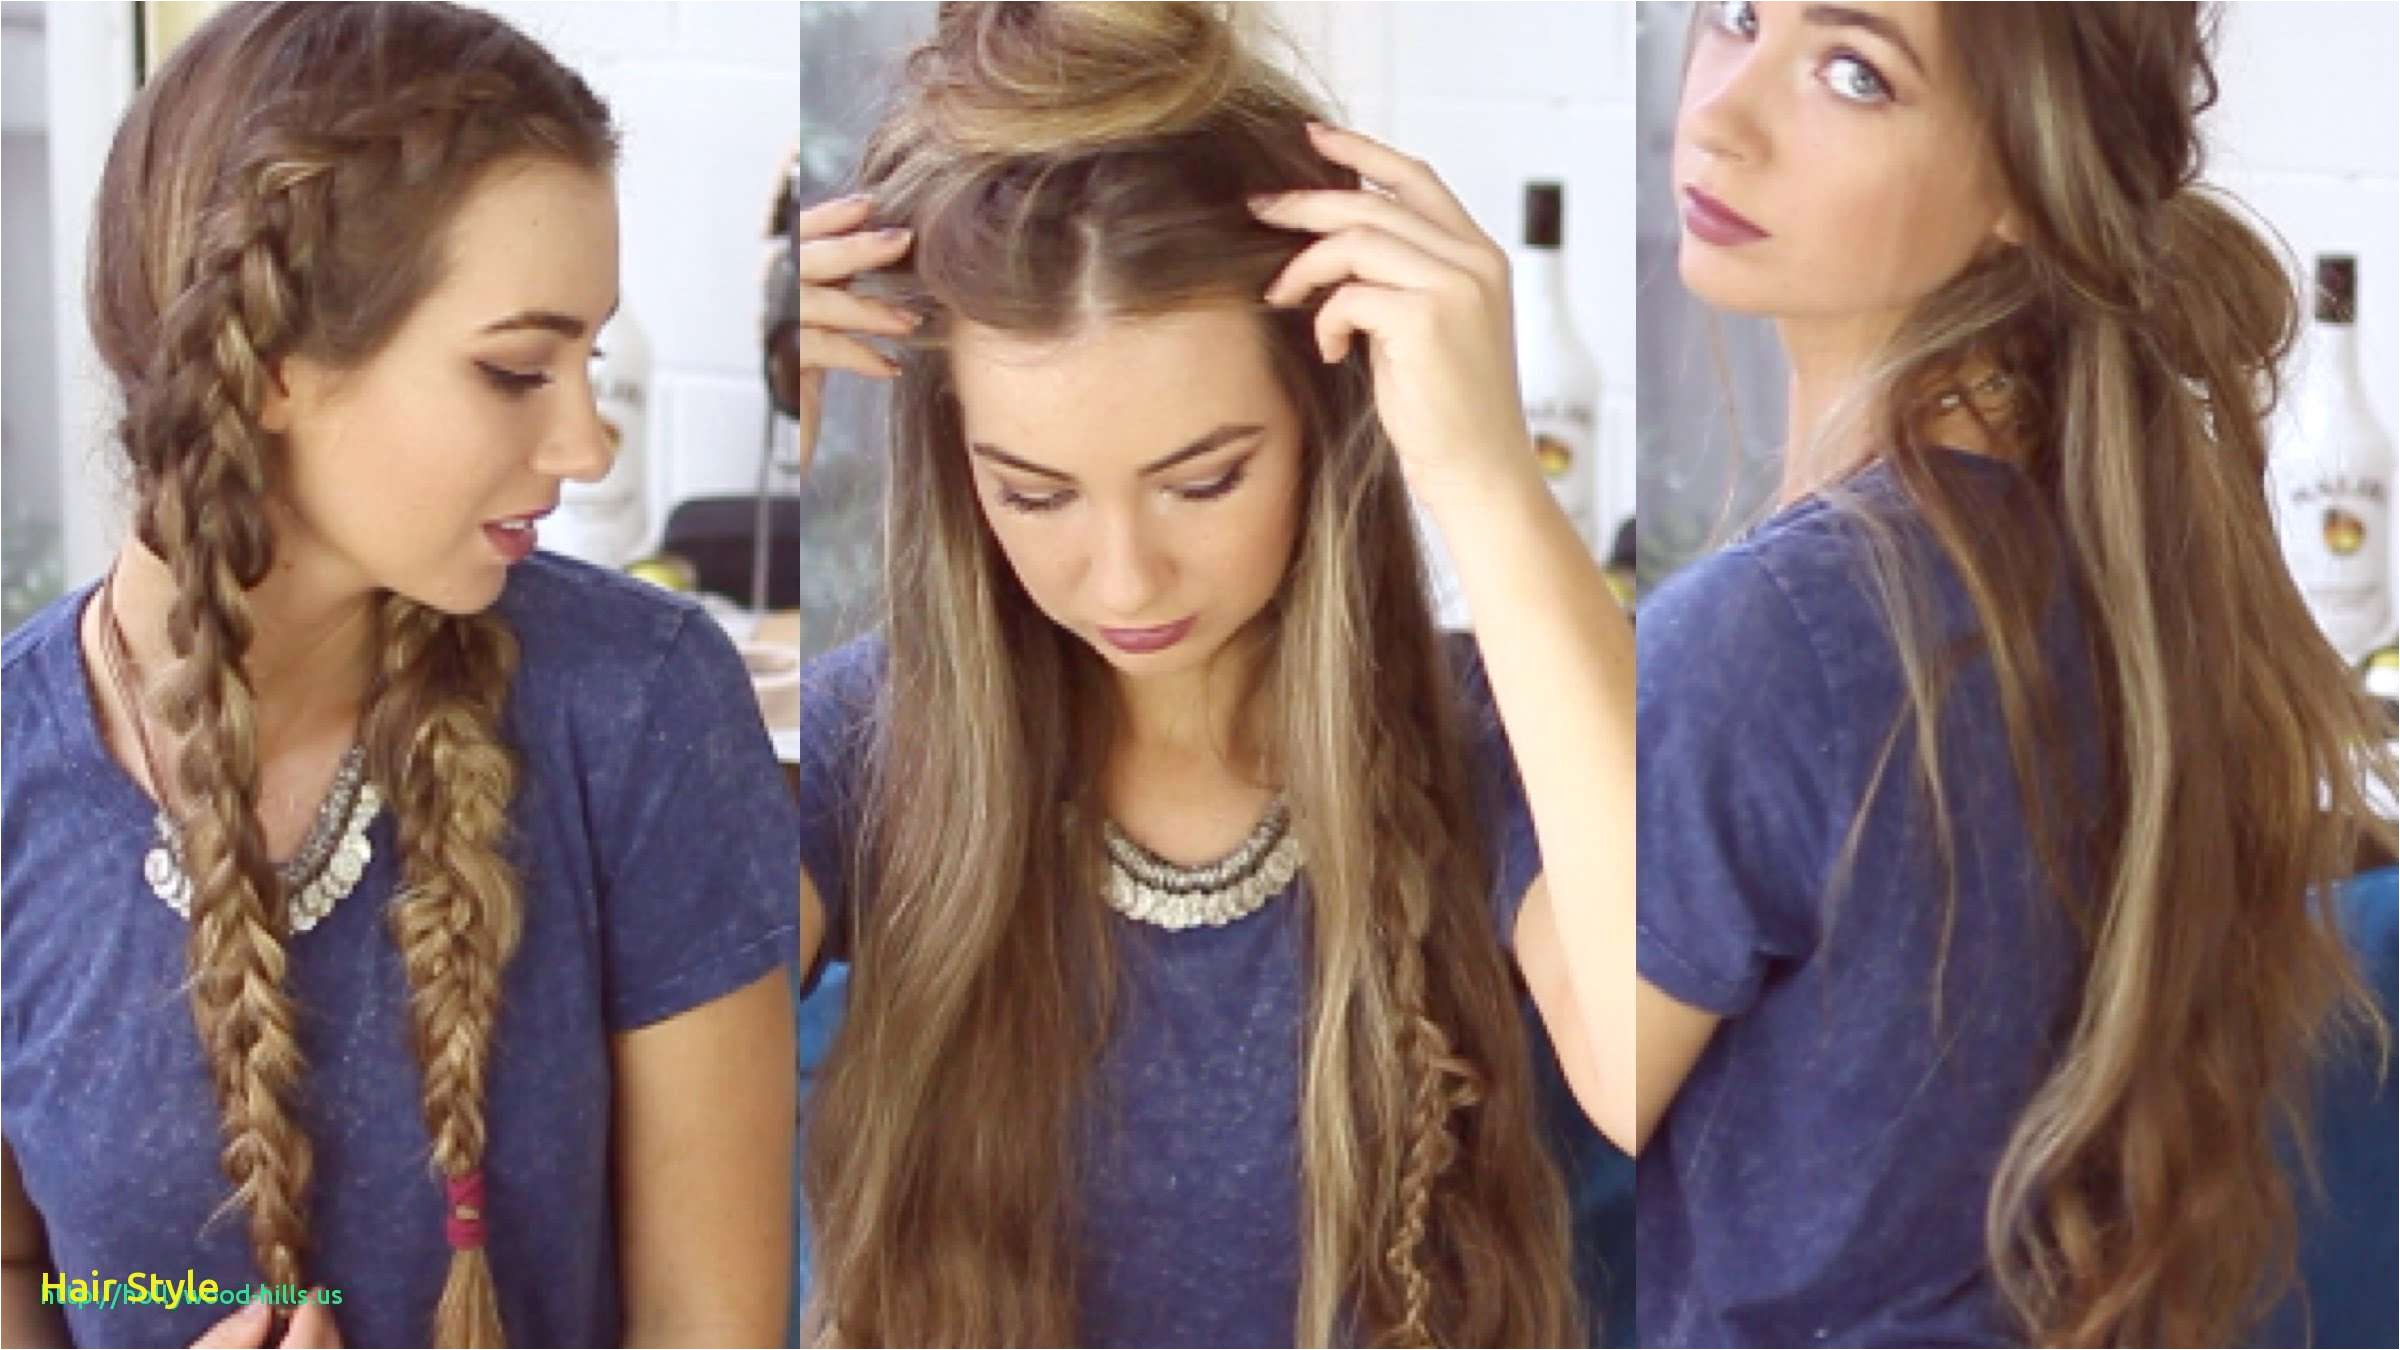 Fun Easy Hairstyles for Girls New Super Quick Hairstyles